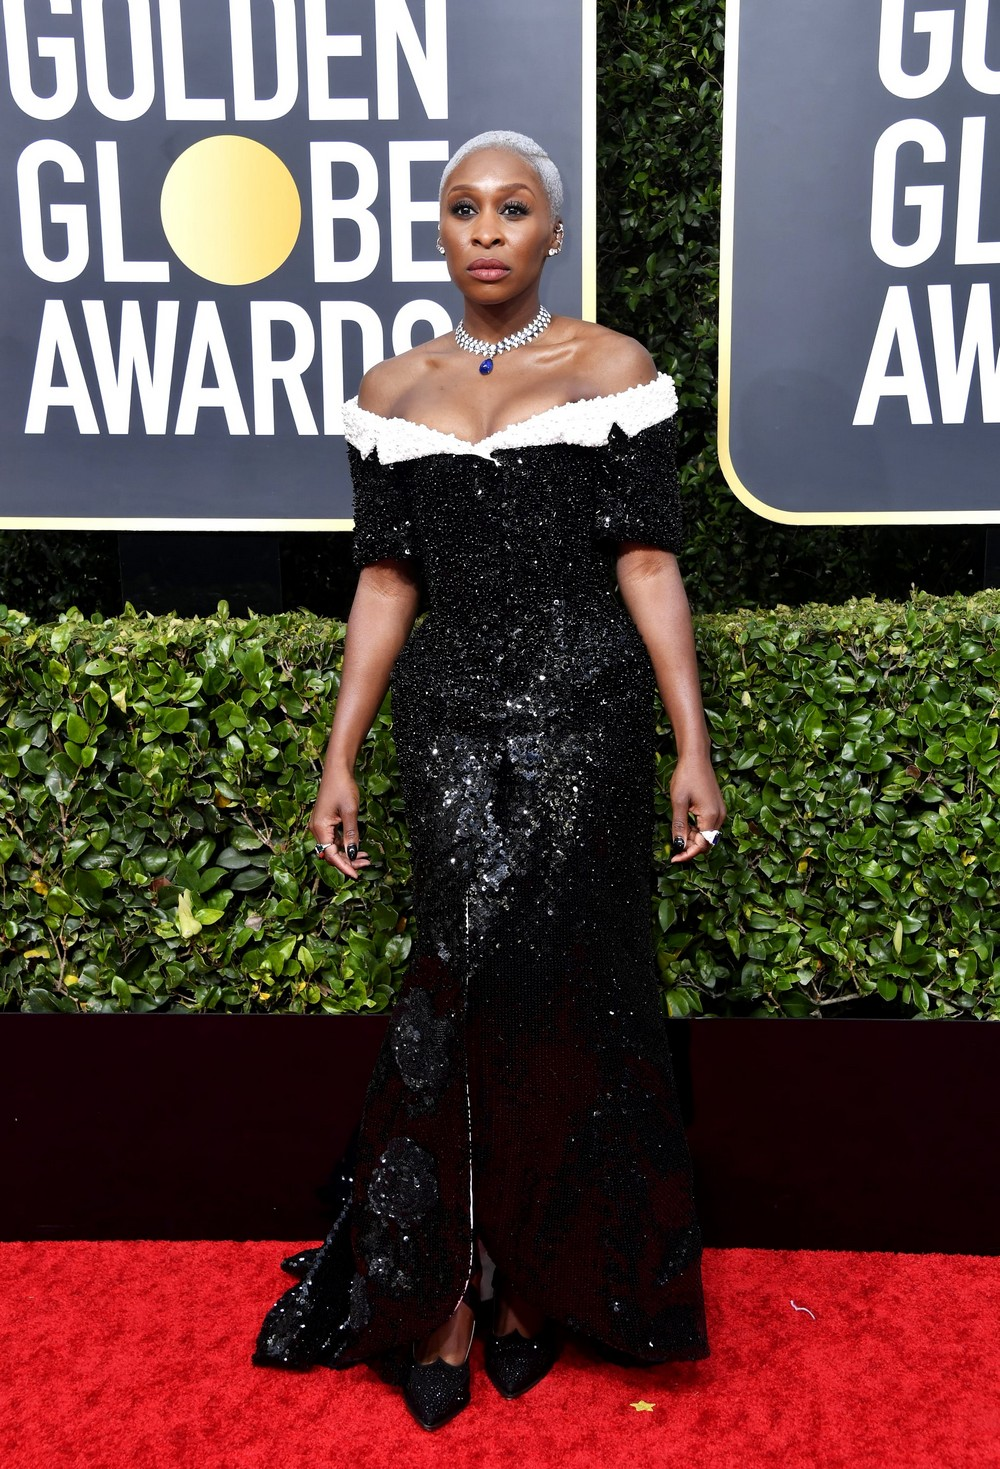 Golden Globes 2020 The Most Exciting Looks Seen on the Red Carpet 2 golden globes 2020 Golden Globes 2020: The Most Exciting Looks Seen on the Red Carpet Golden Globes 2020 The Most Exciting Looks Seen on the Red Carpet 2